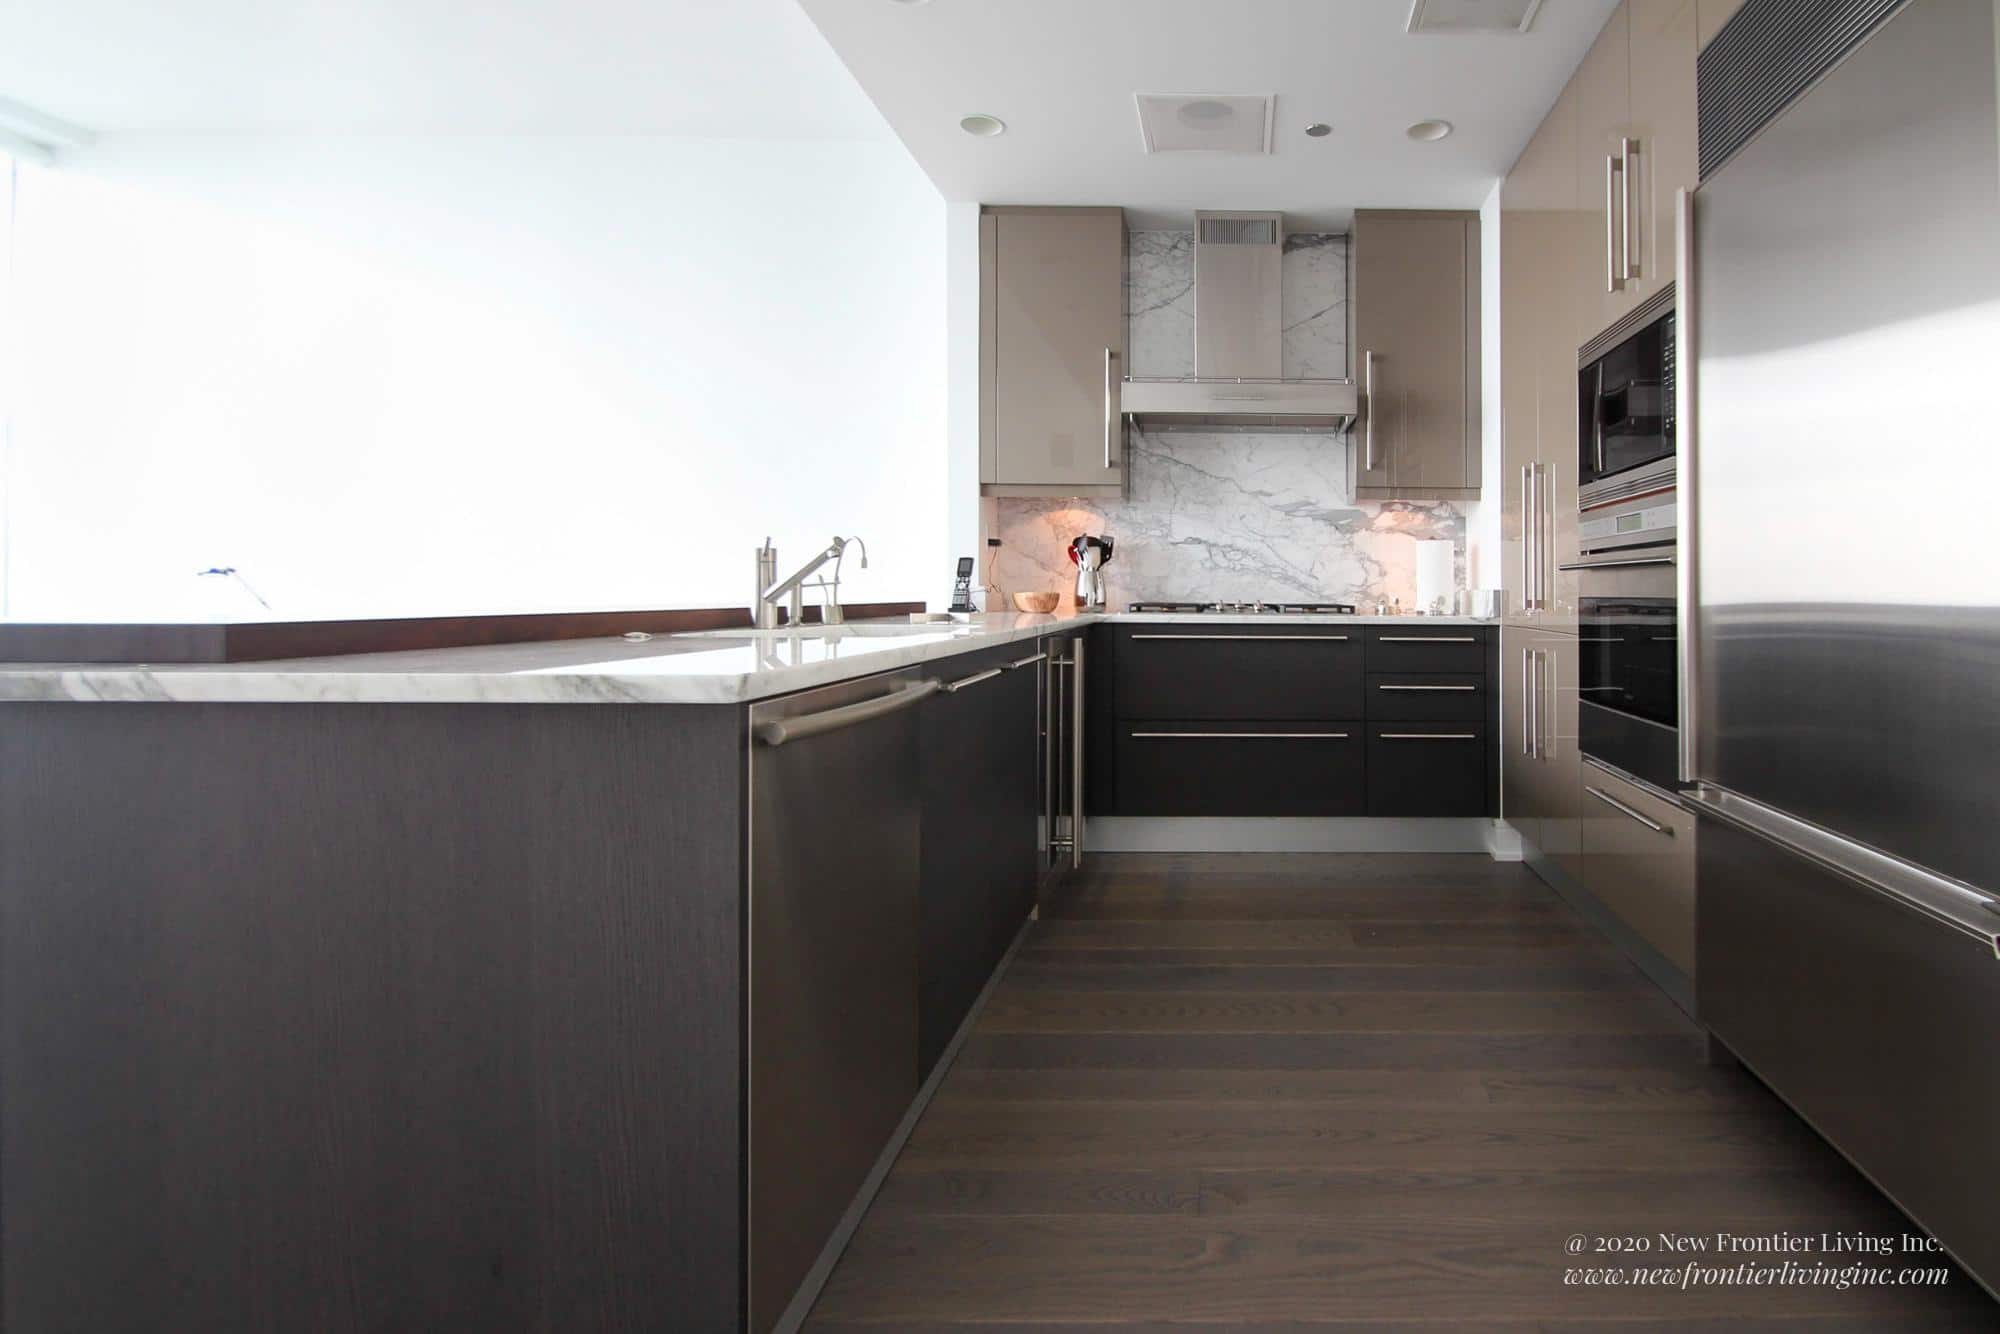 Dark gray kitchen cabinets and dark gray wooden floor, sink and counter on the left, cooktop front, oven and fridge on the right